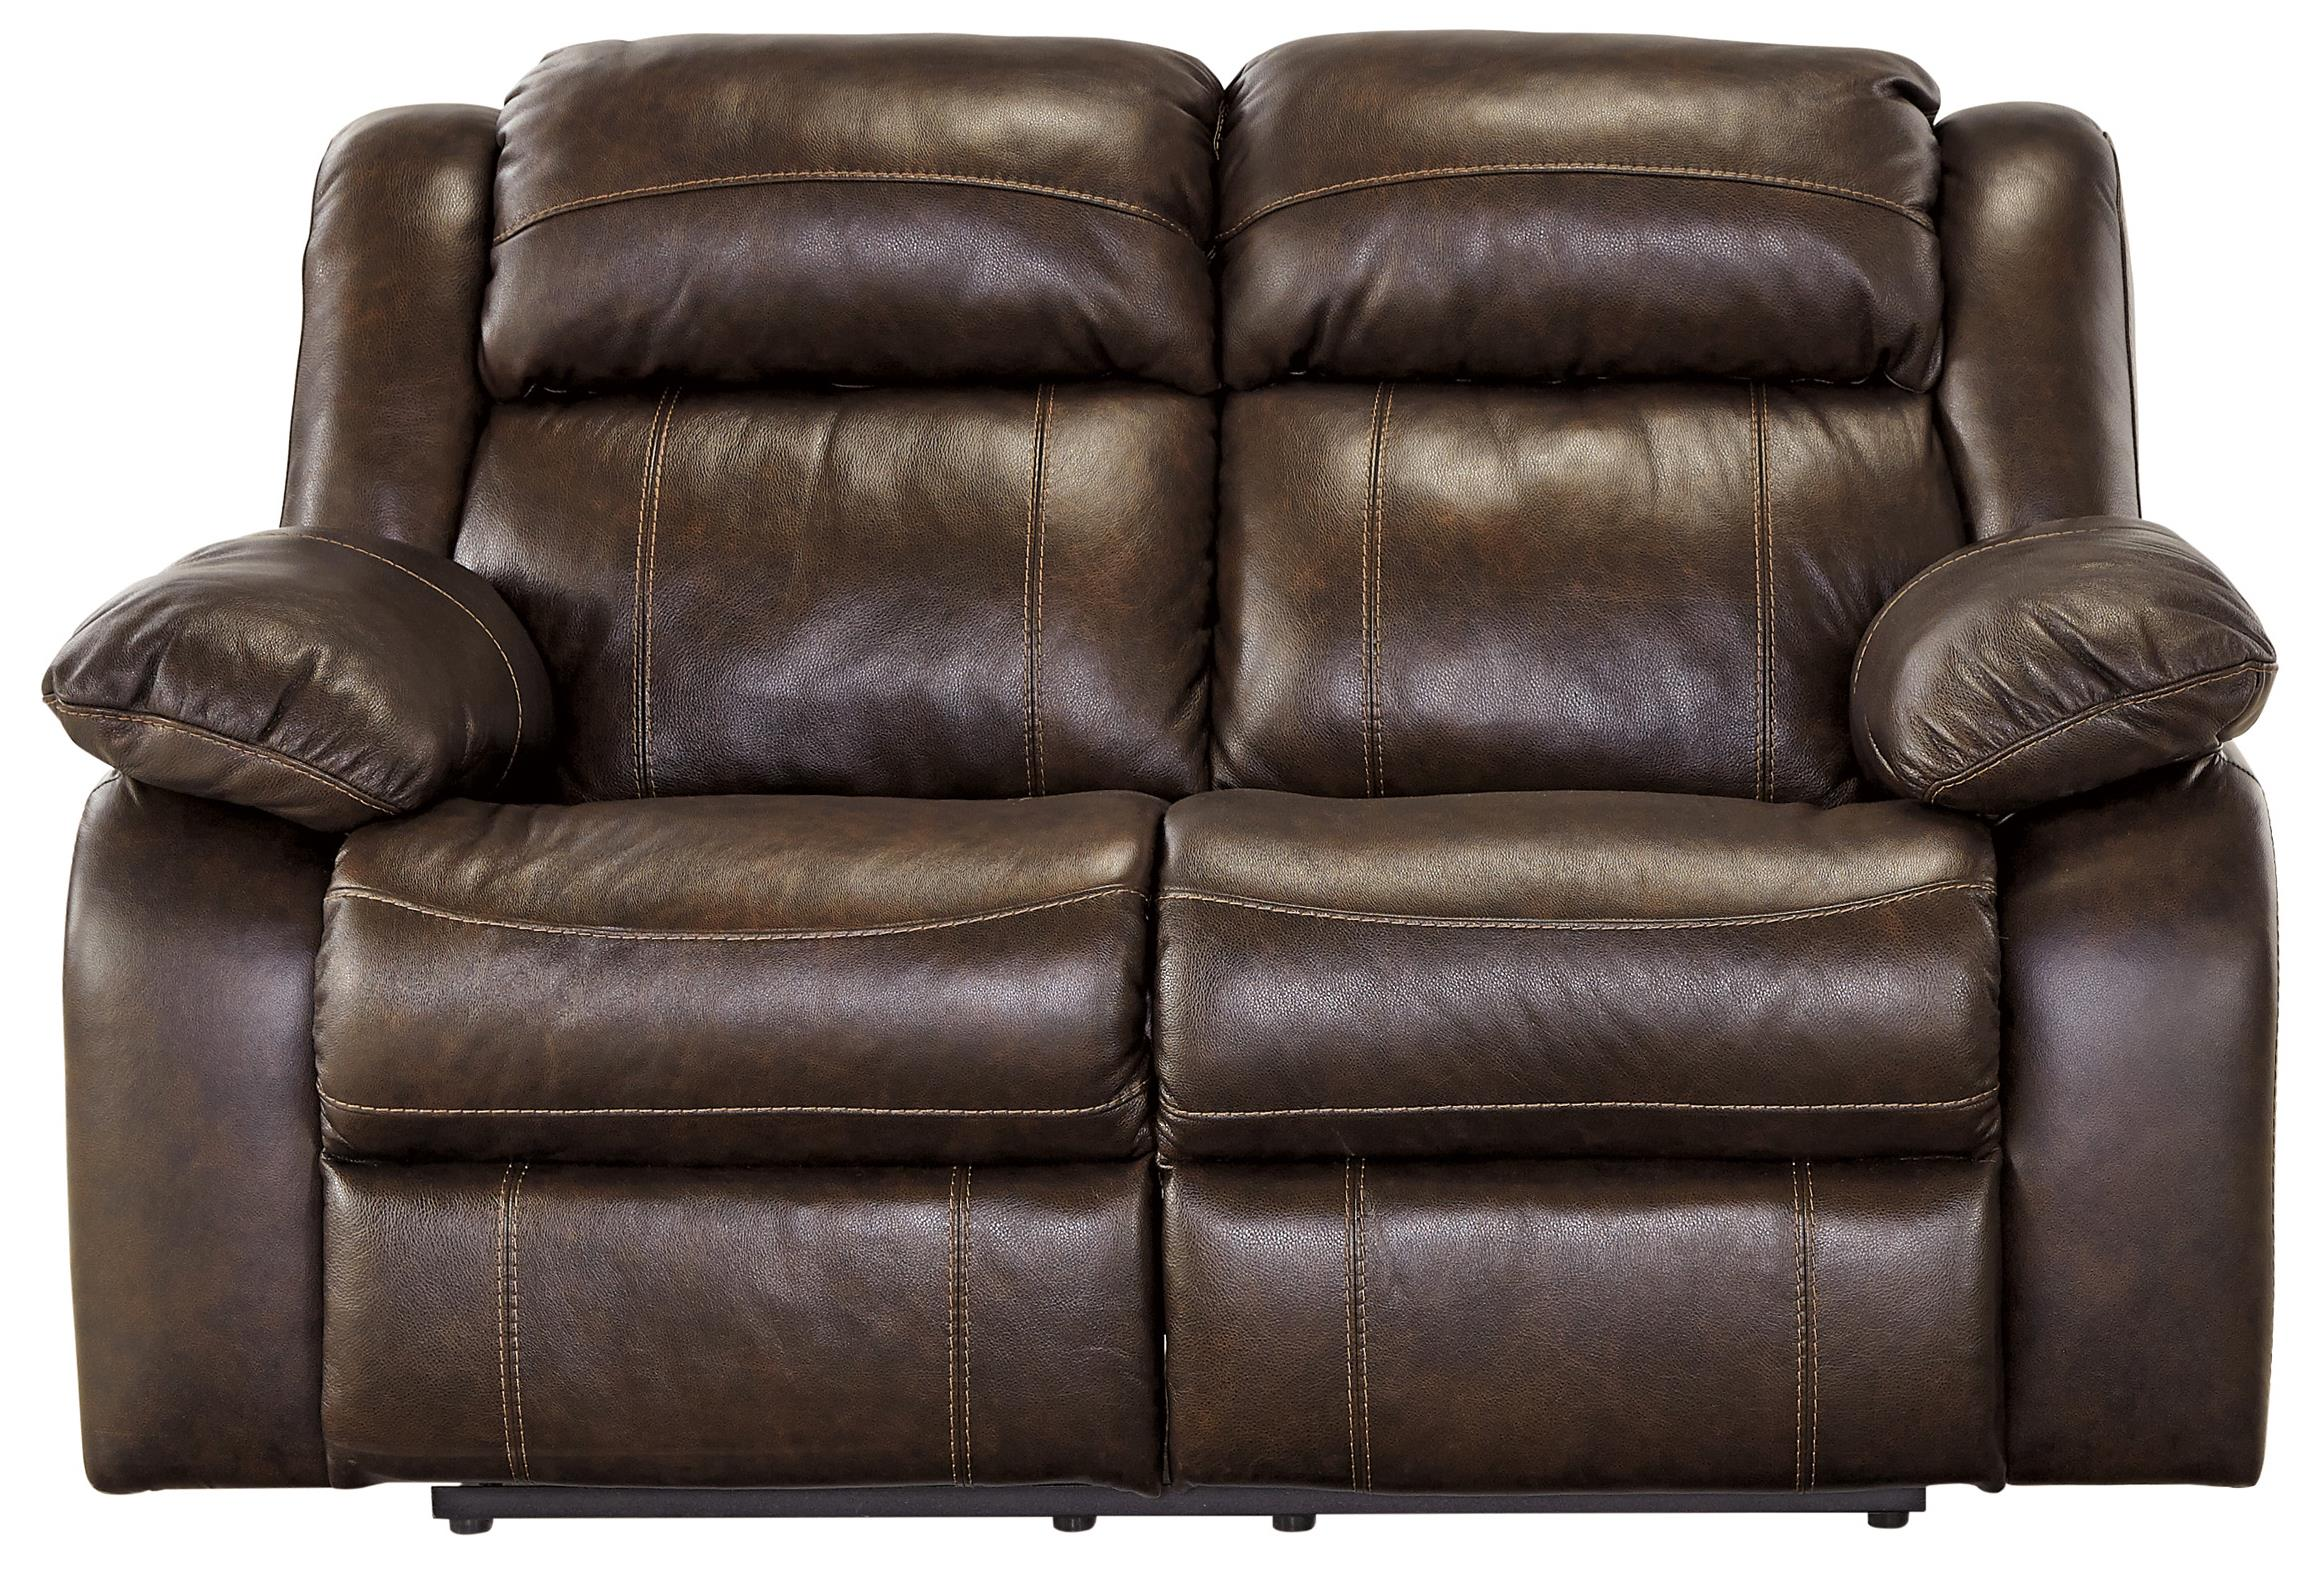 Signature Design by Ashley Branton Reclining Loveseat - Item Number: U7190186